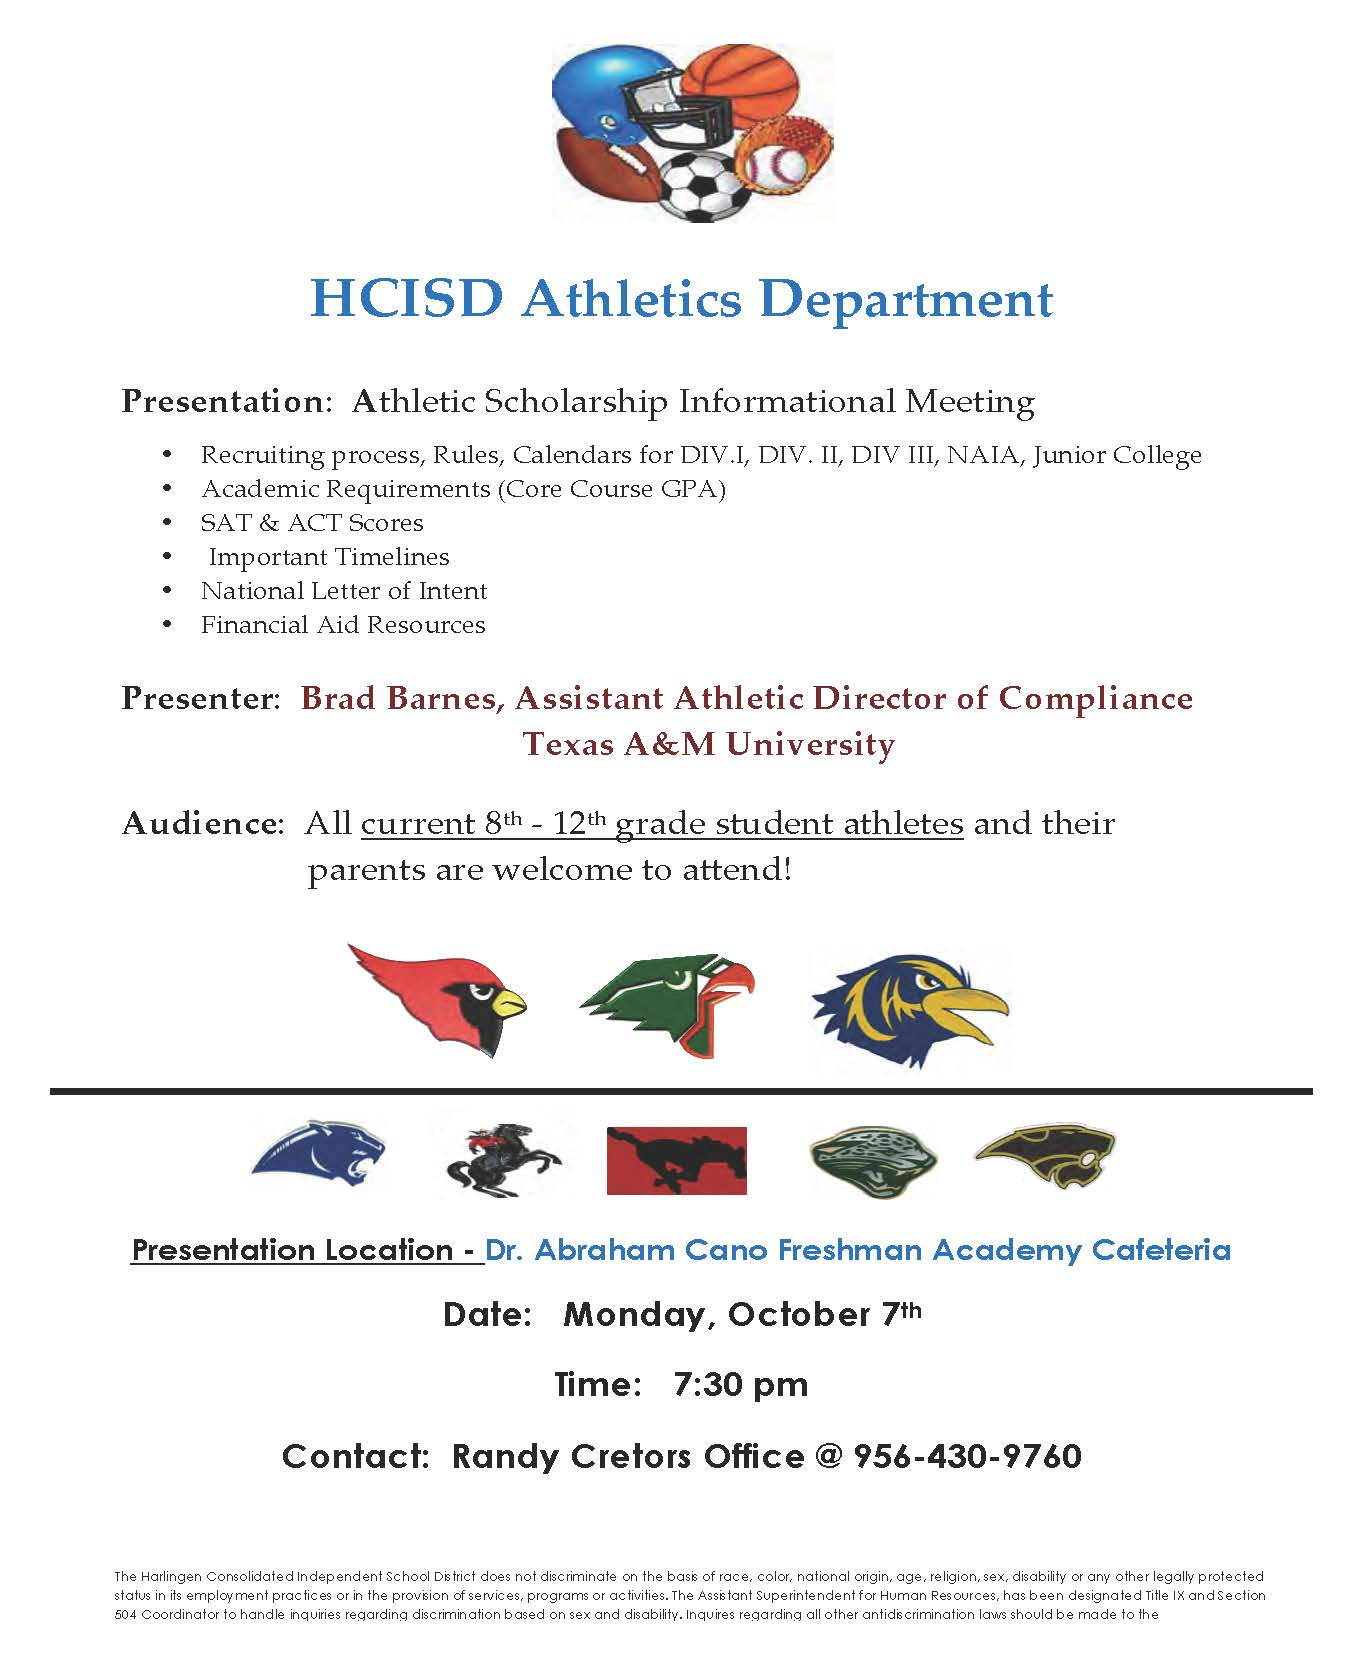 Athletes and parents invited to Athletic Scholarship Information Meeting